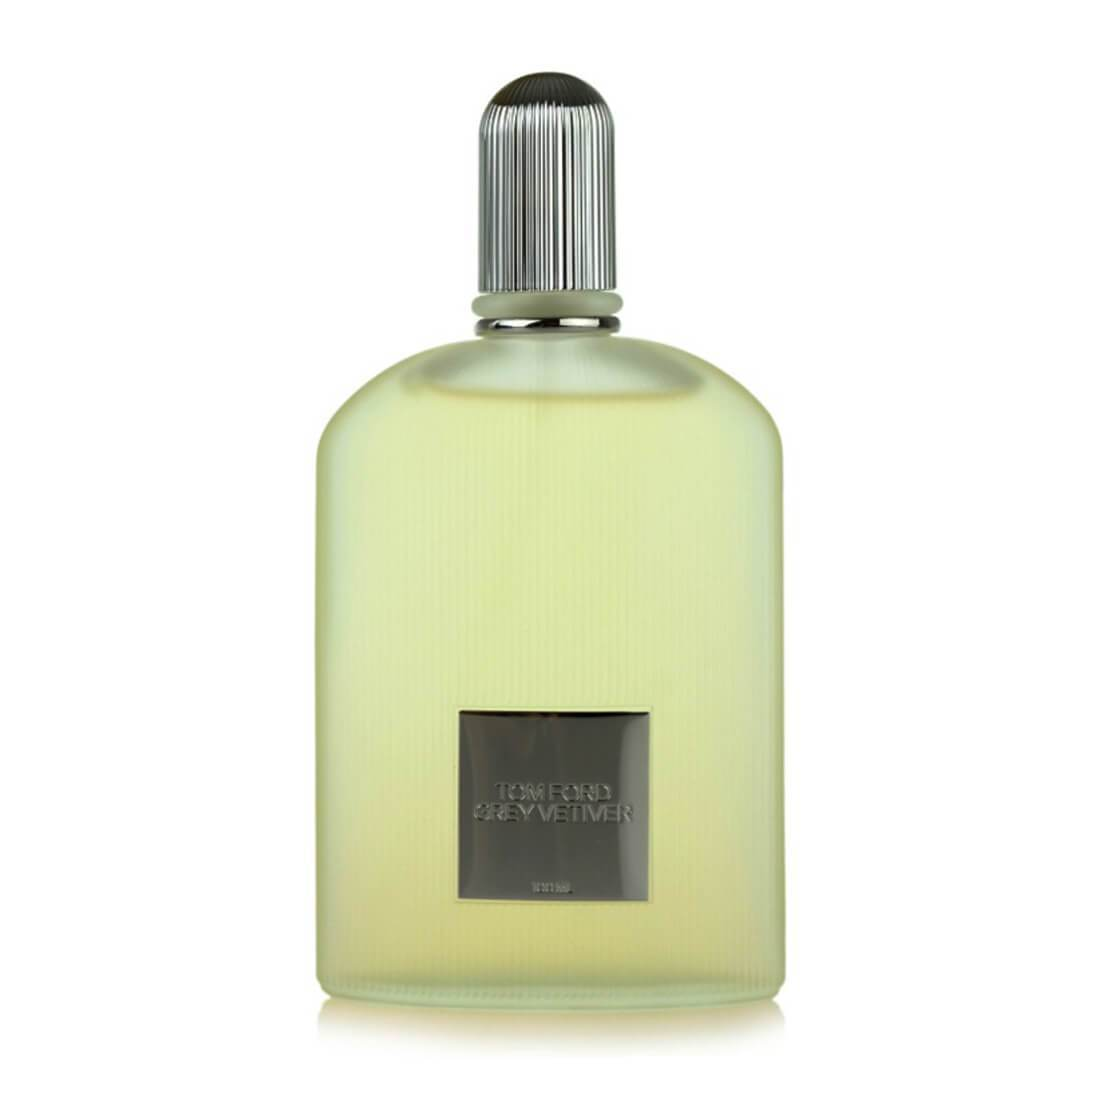 Tom Ford Grey Vetiver Eau De Perfume - 100ml